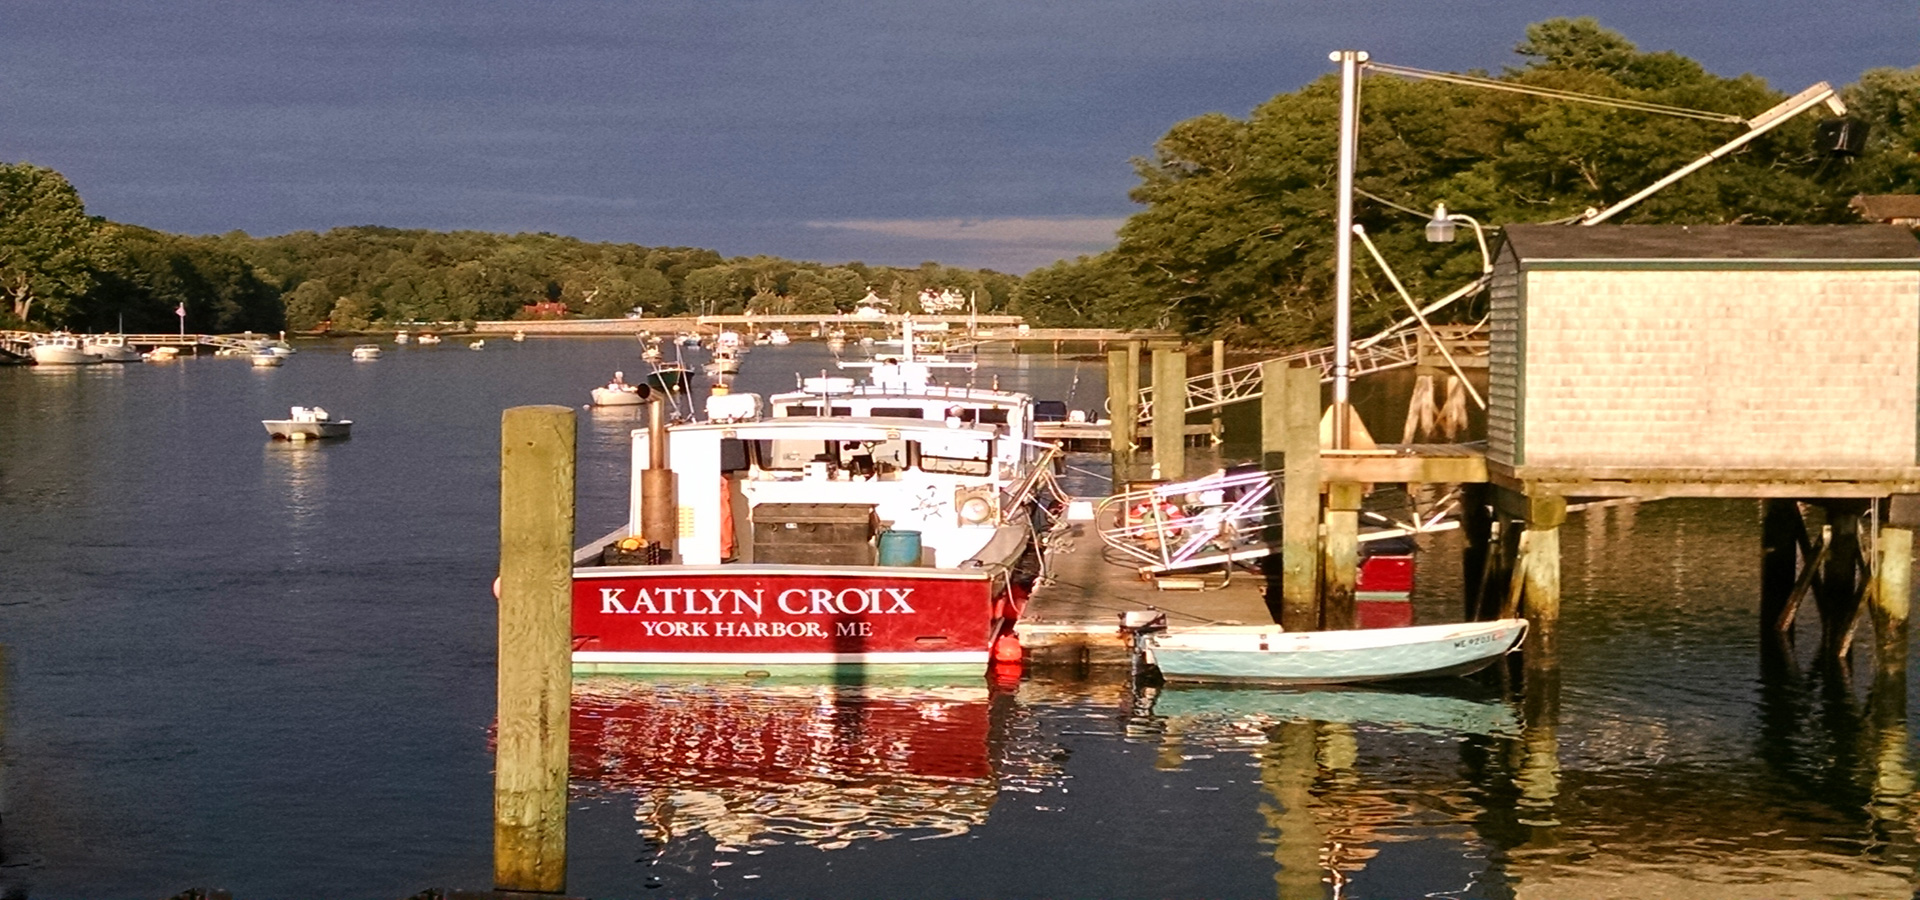 Kaitlyn Croix moored on York River